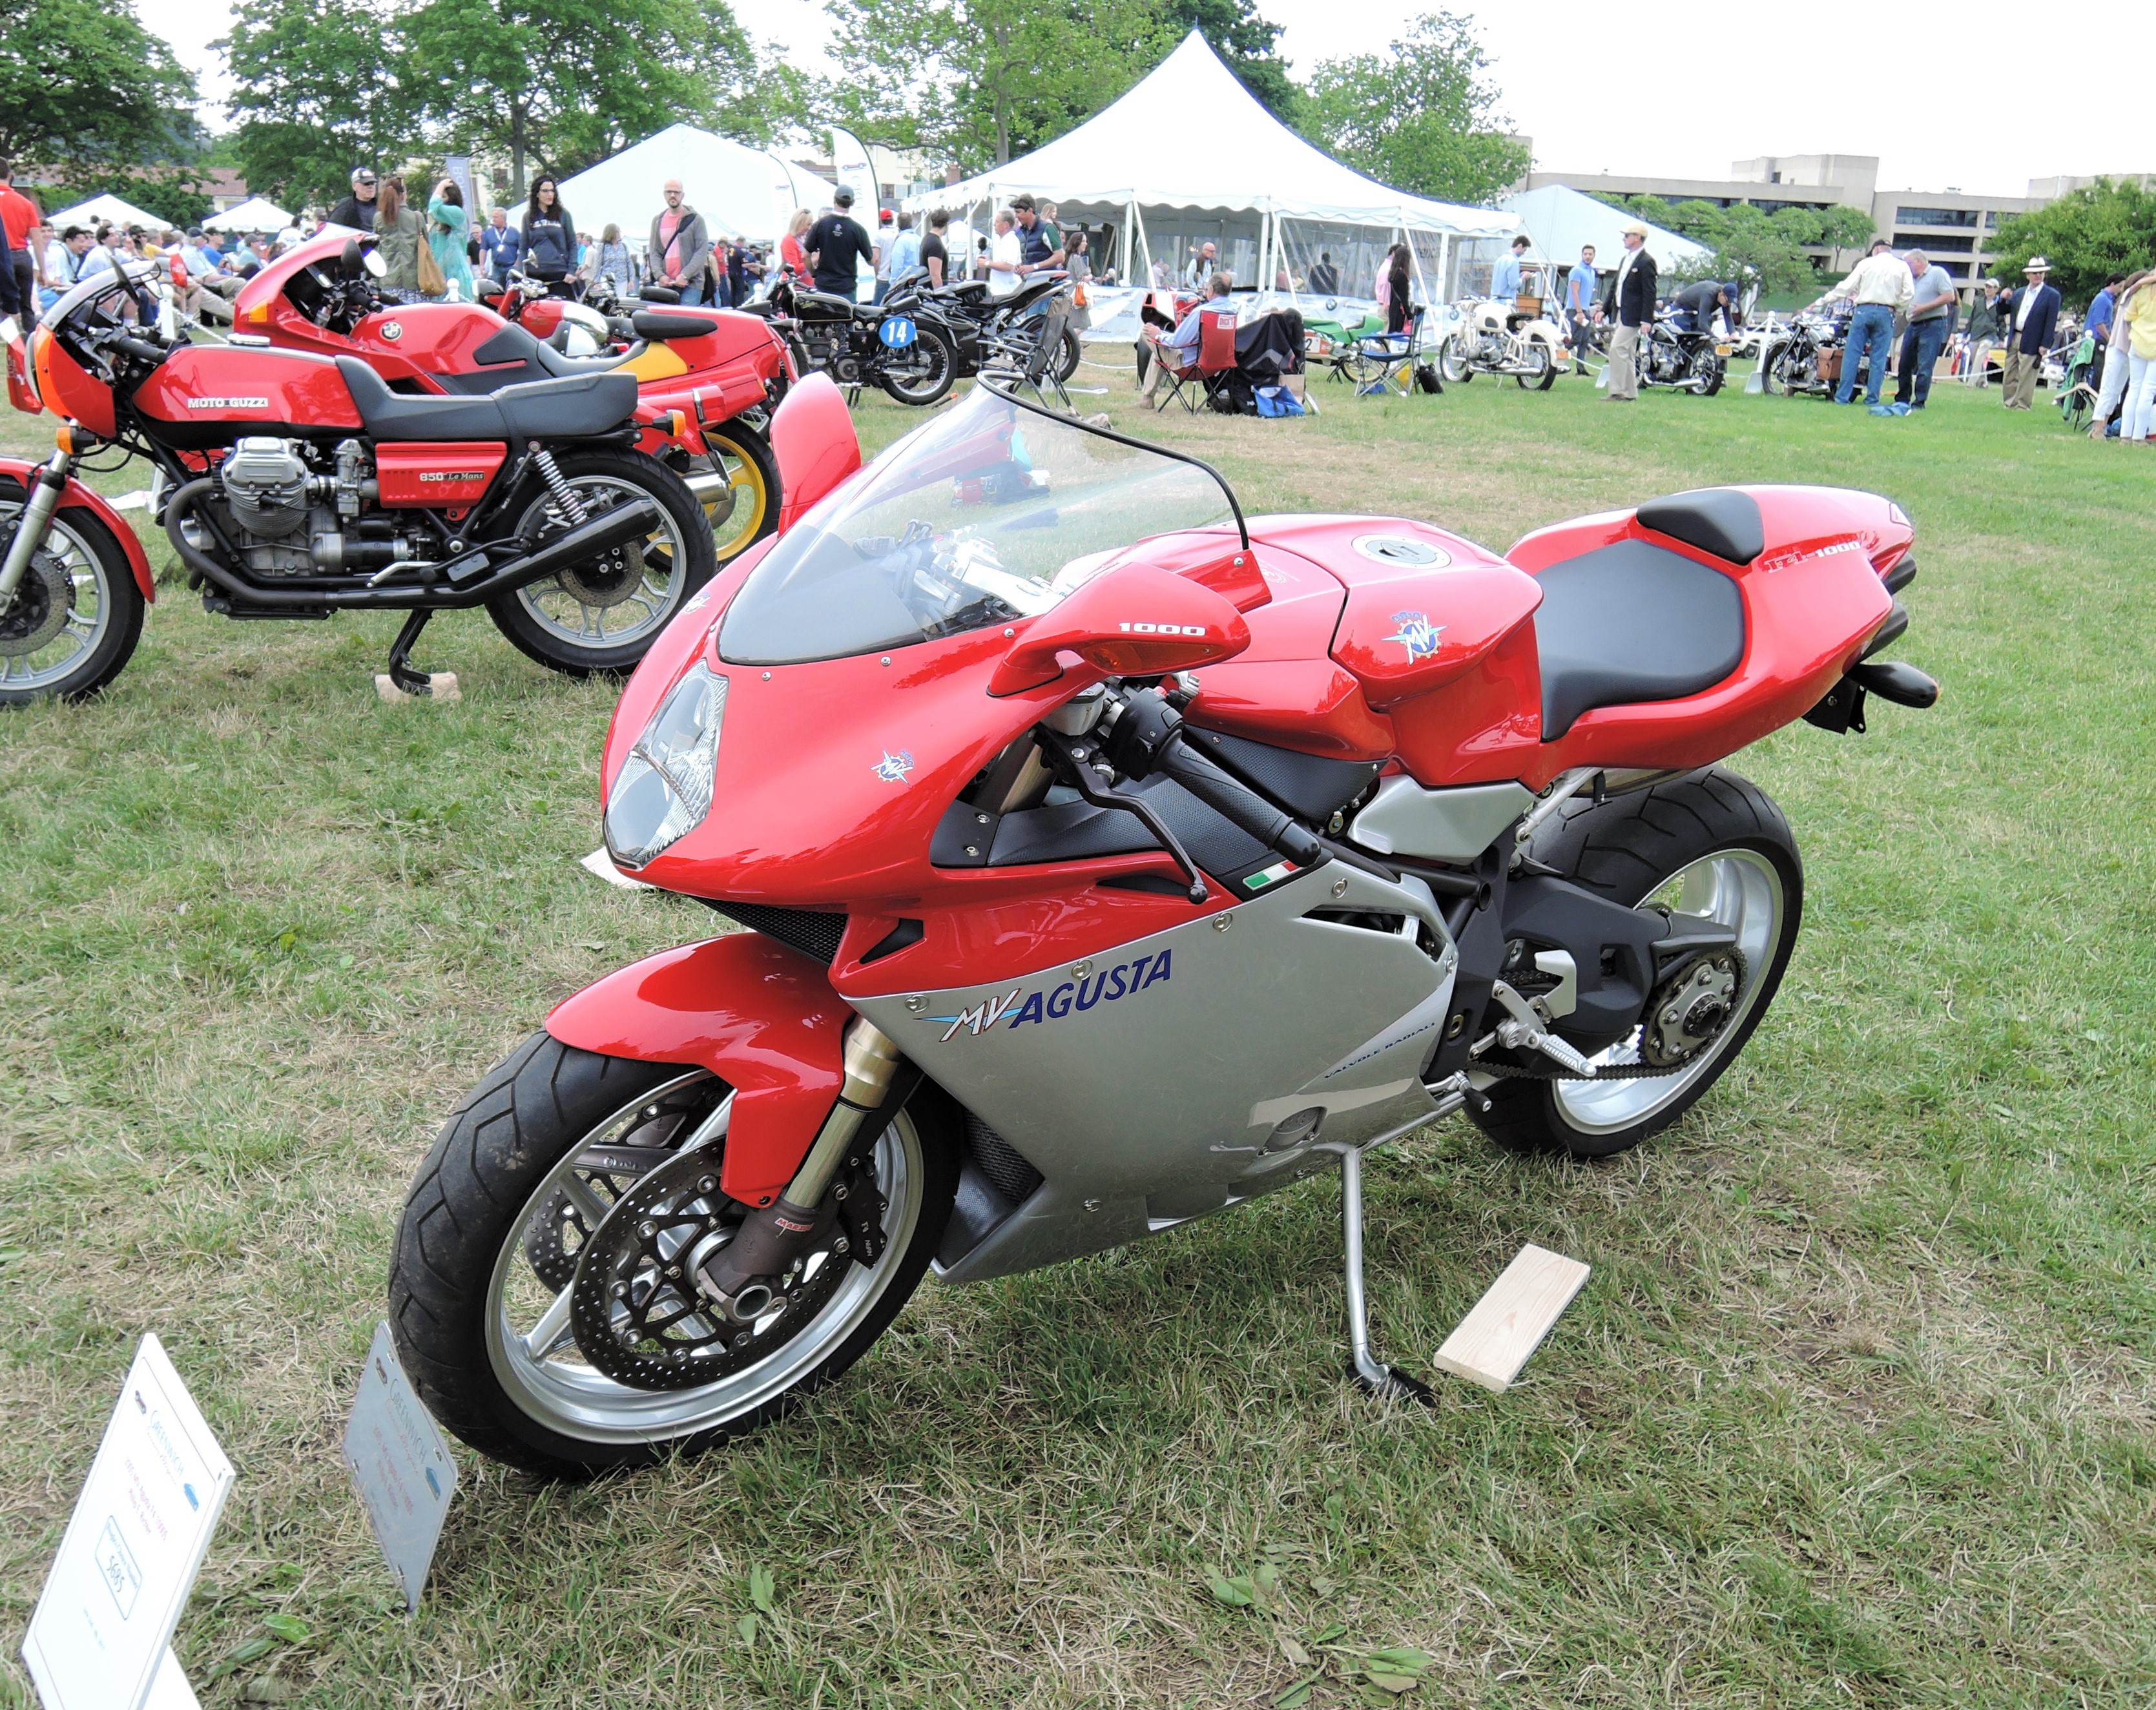 red 2005 MV Agusta F4 1000S - Greenwich Concours d'Elegance 2017